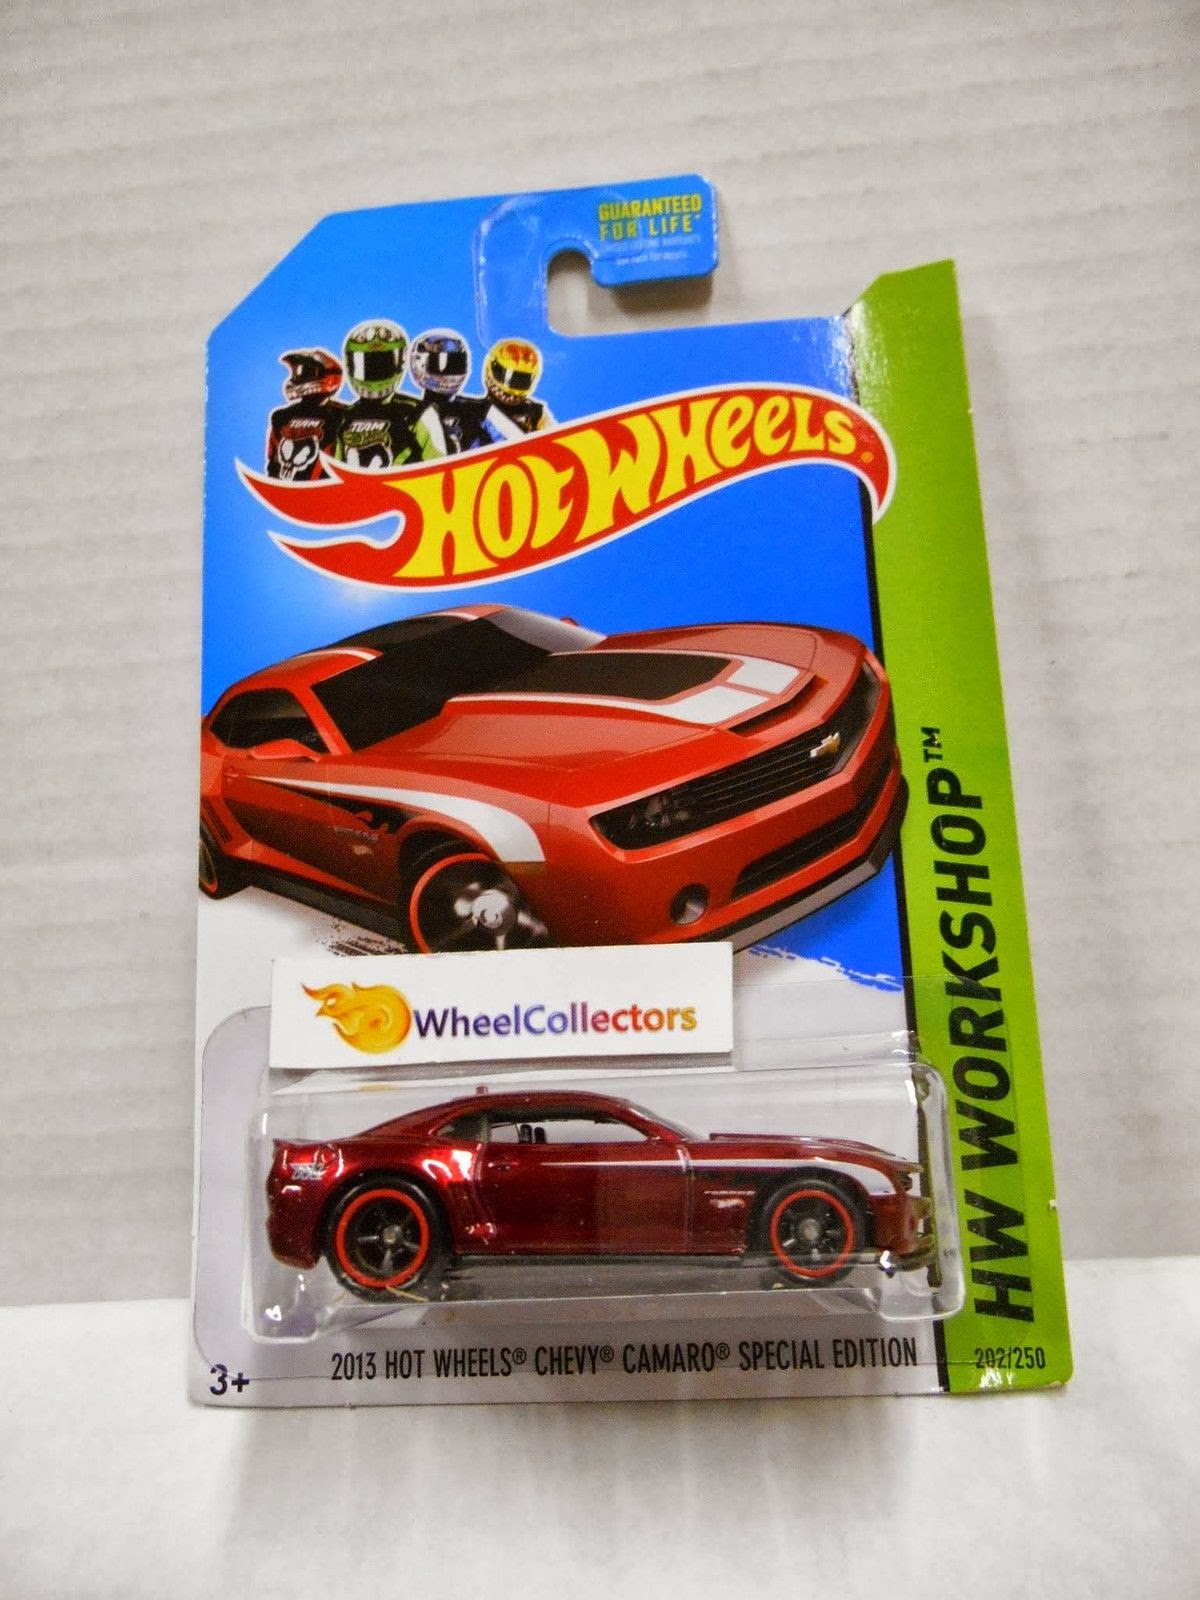 hot wheels cars real hot wheels cars most rare eye color hot wheels - Rare Hot Wheels Cars 2013